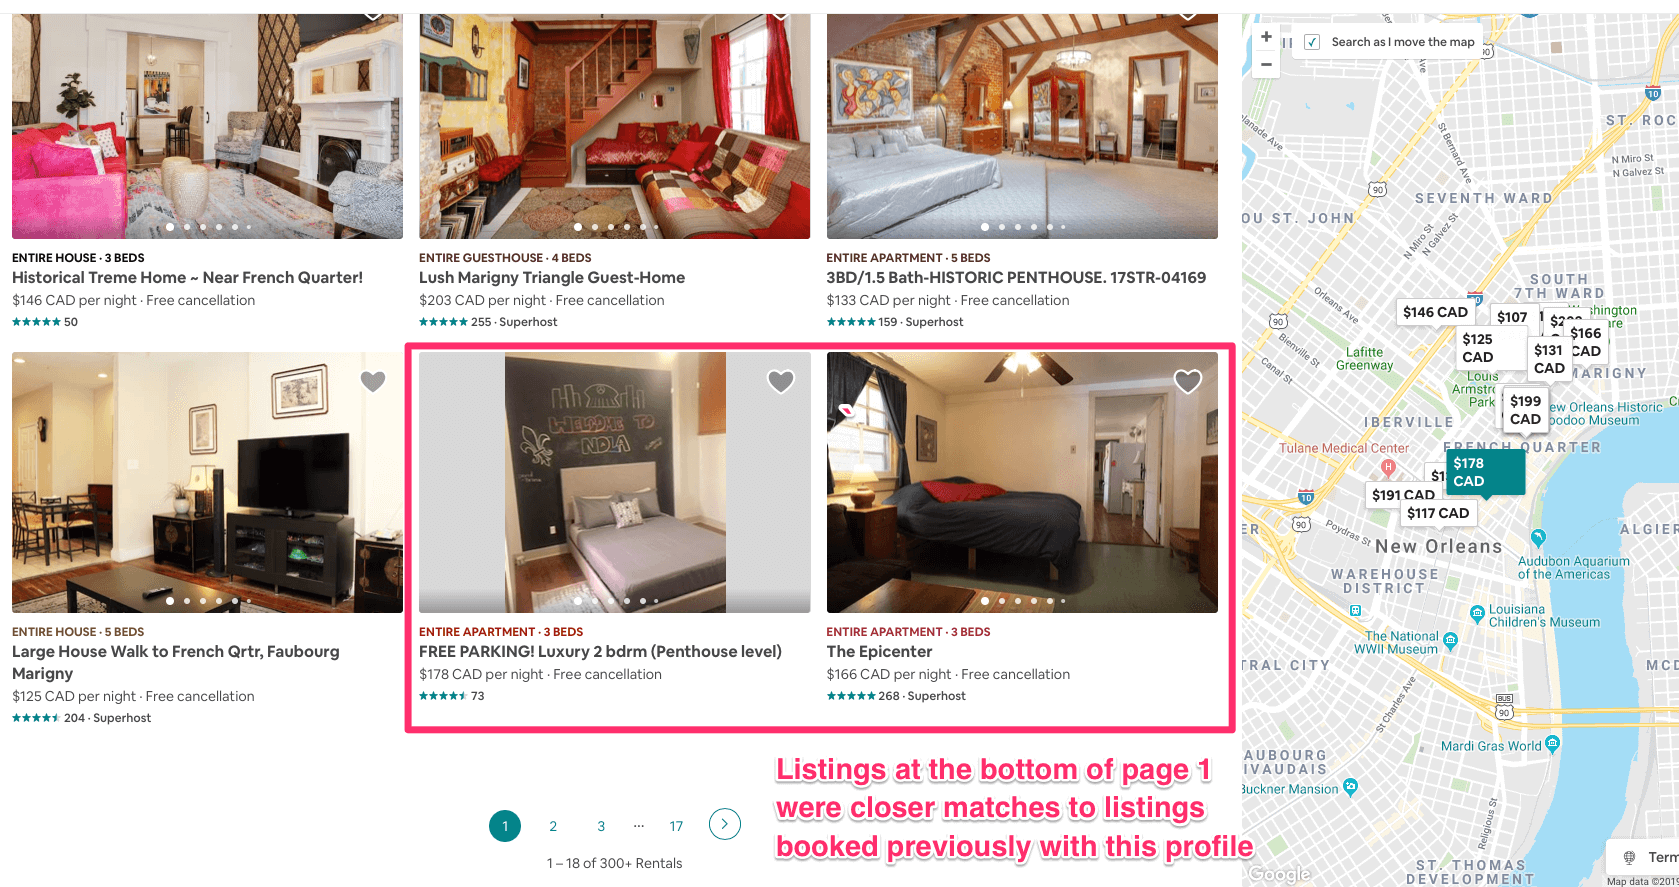 How historical bookings affect Airbnb rankings